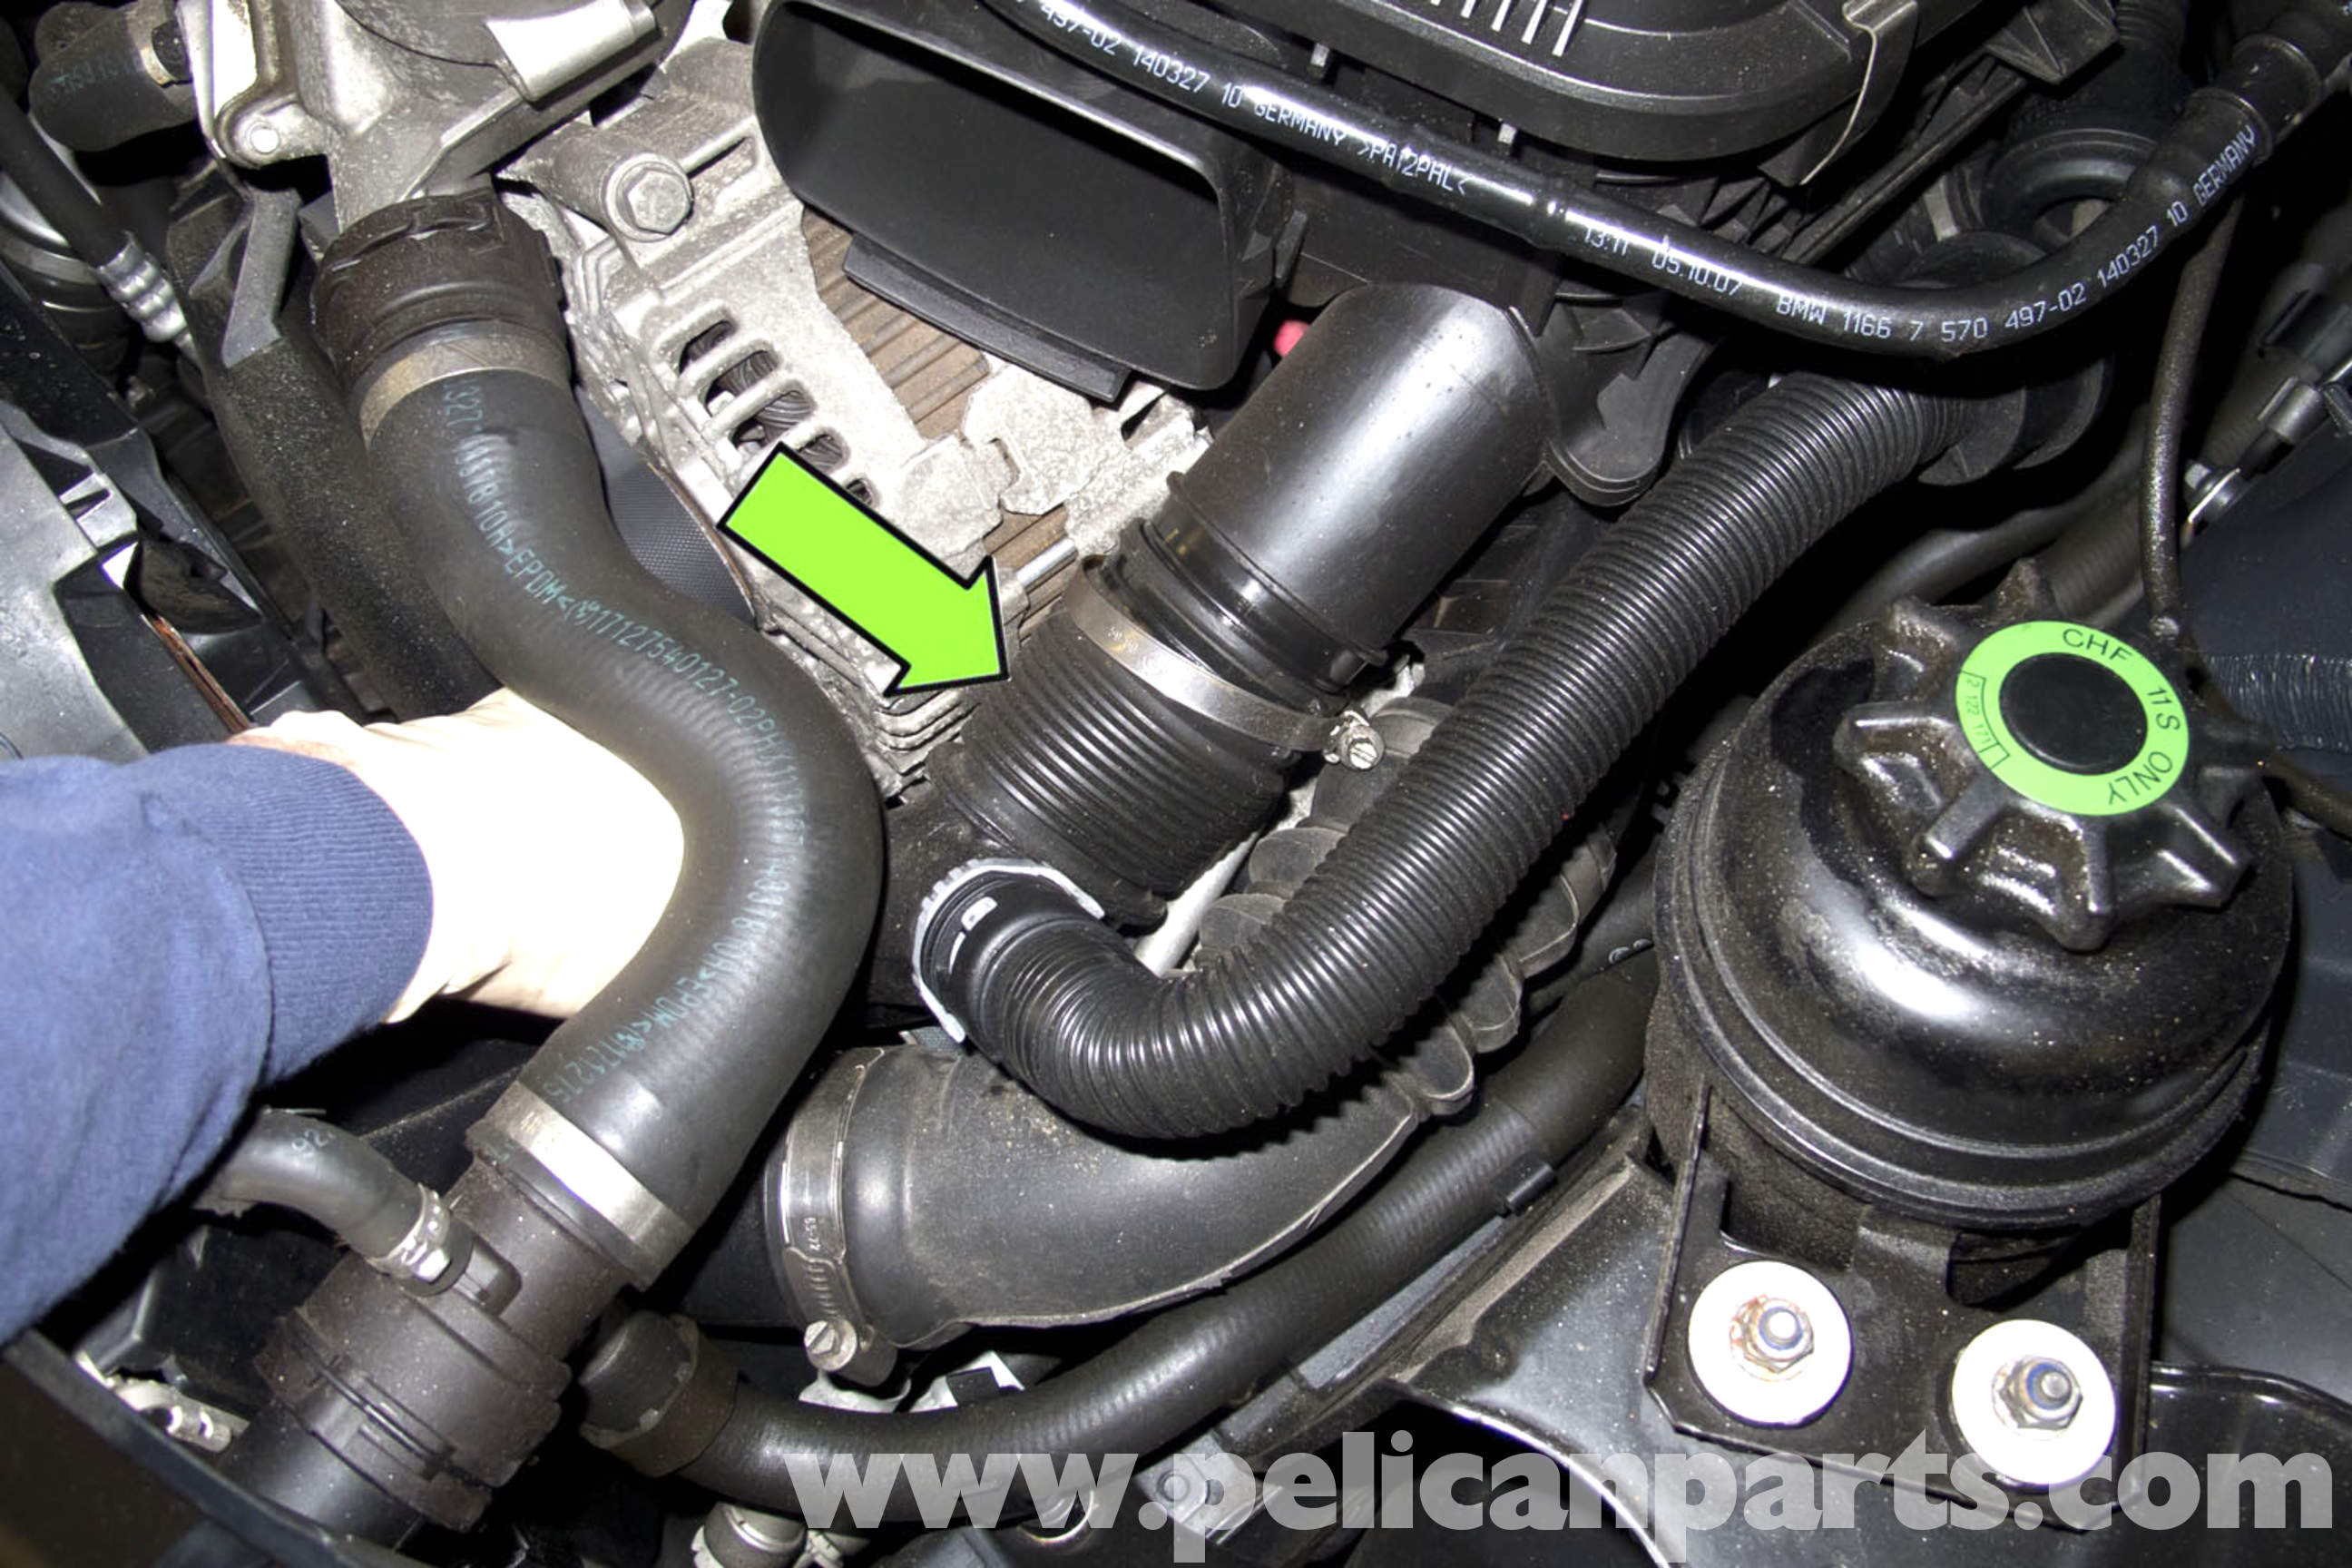 pic18 bmw e90 knock sensor replacement e91, e92, e93 pelican parts BMW E90 Music-Diagram at bakdesigns.co